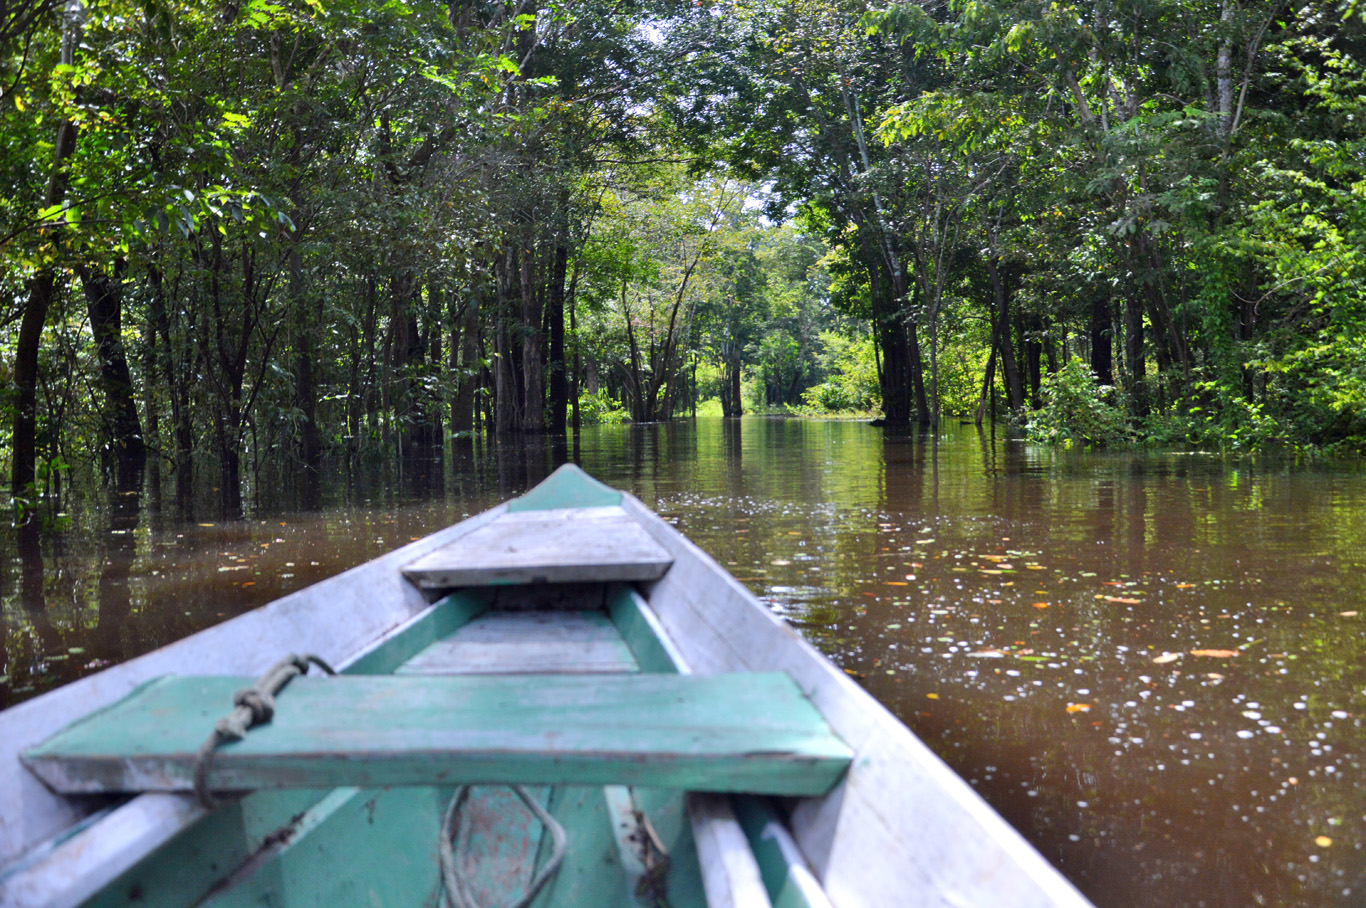 Canoe ride through flooded jungle